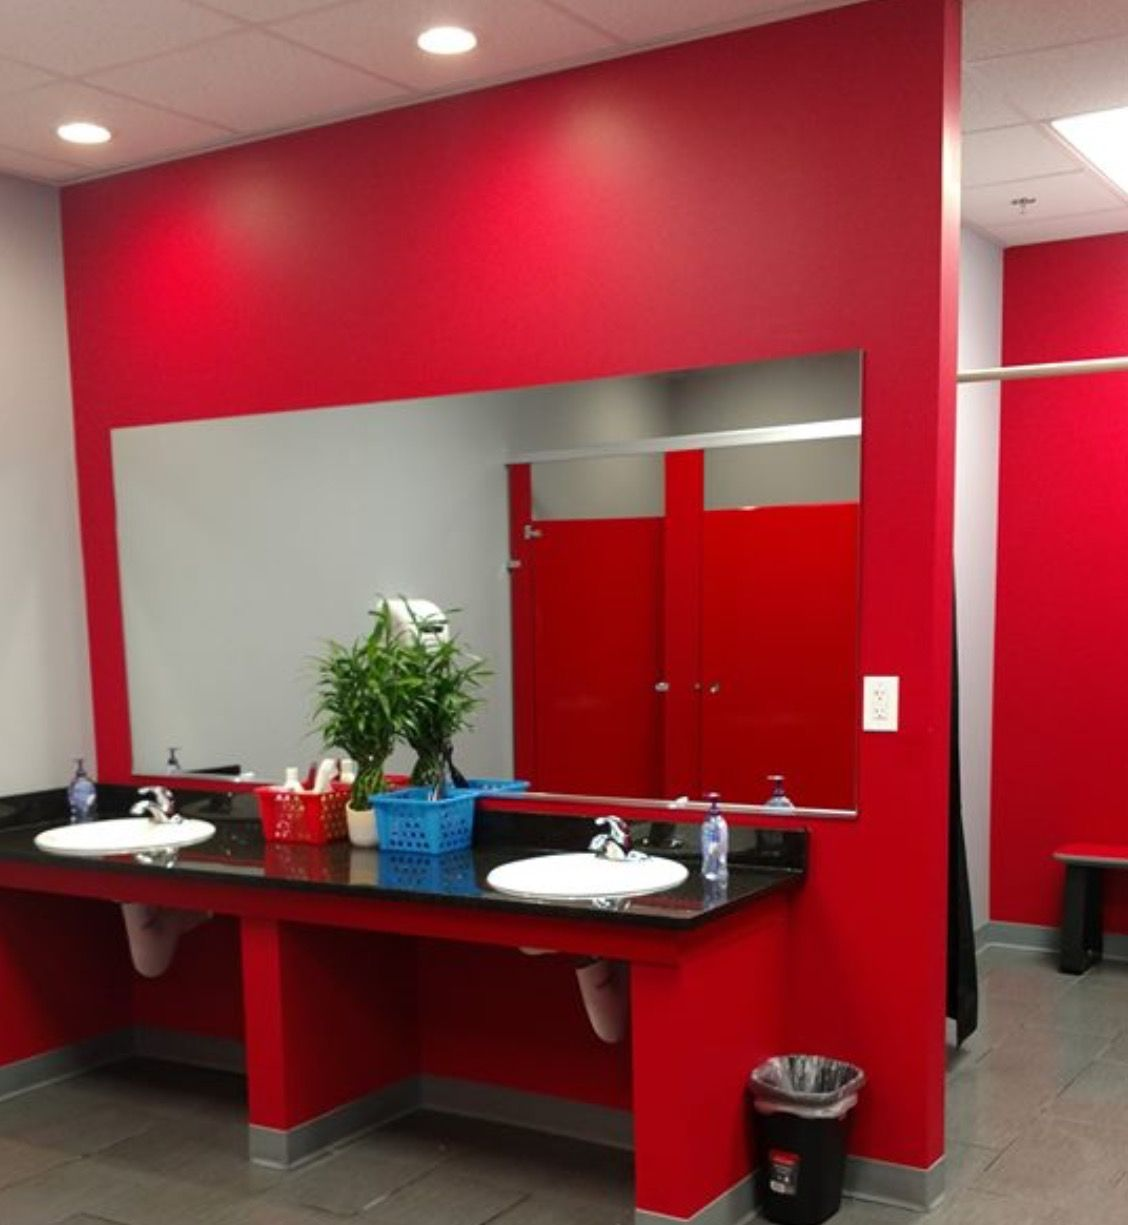 Vanity Areas Showers And Lockers In All Workout Anytime Locations